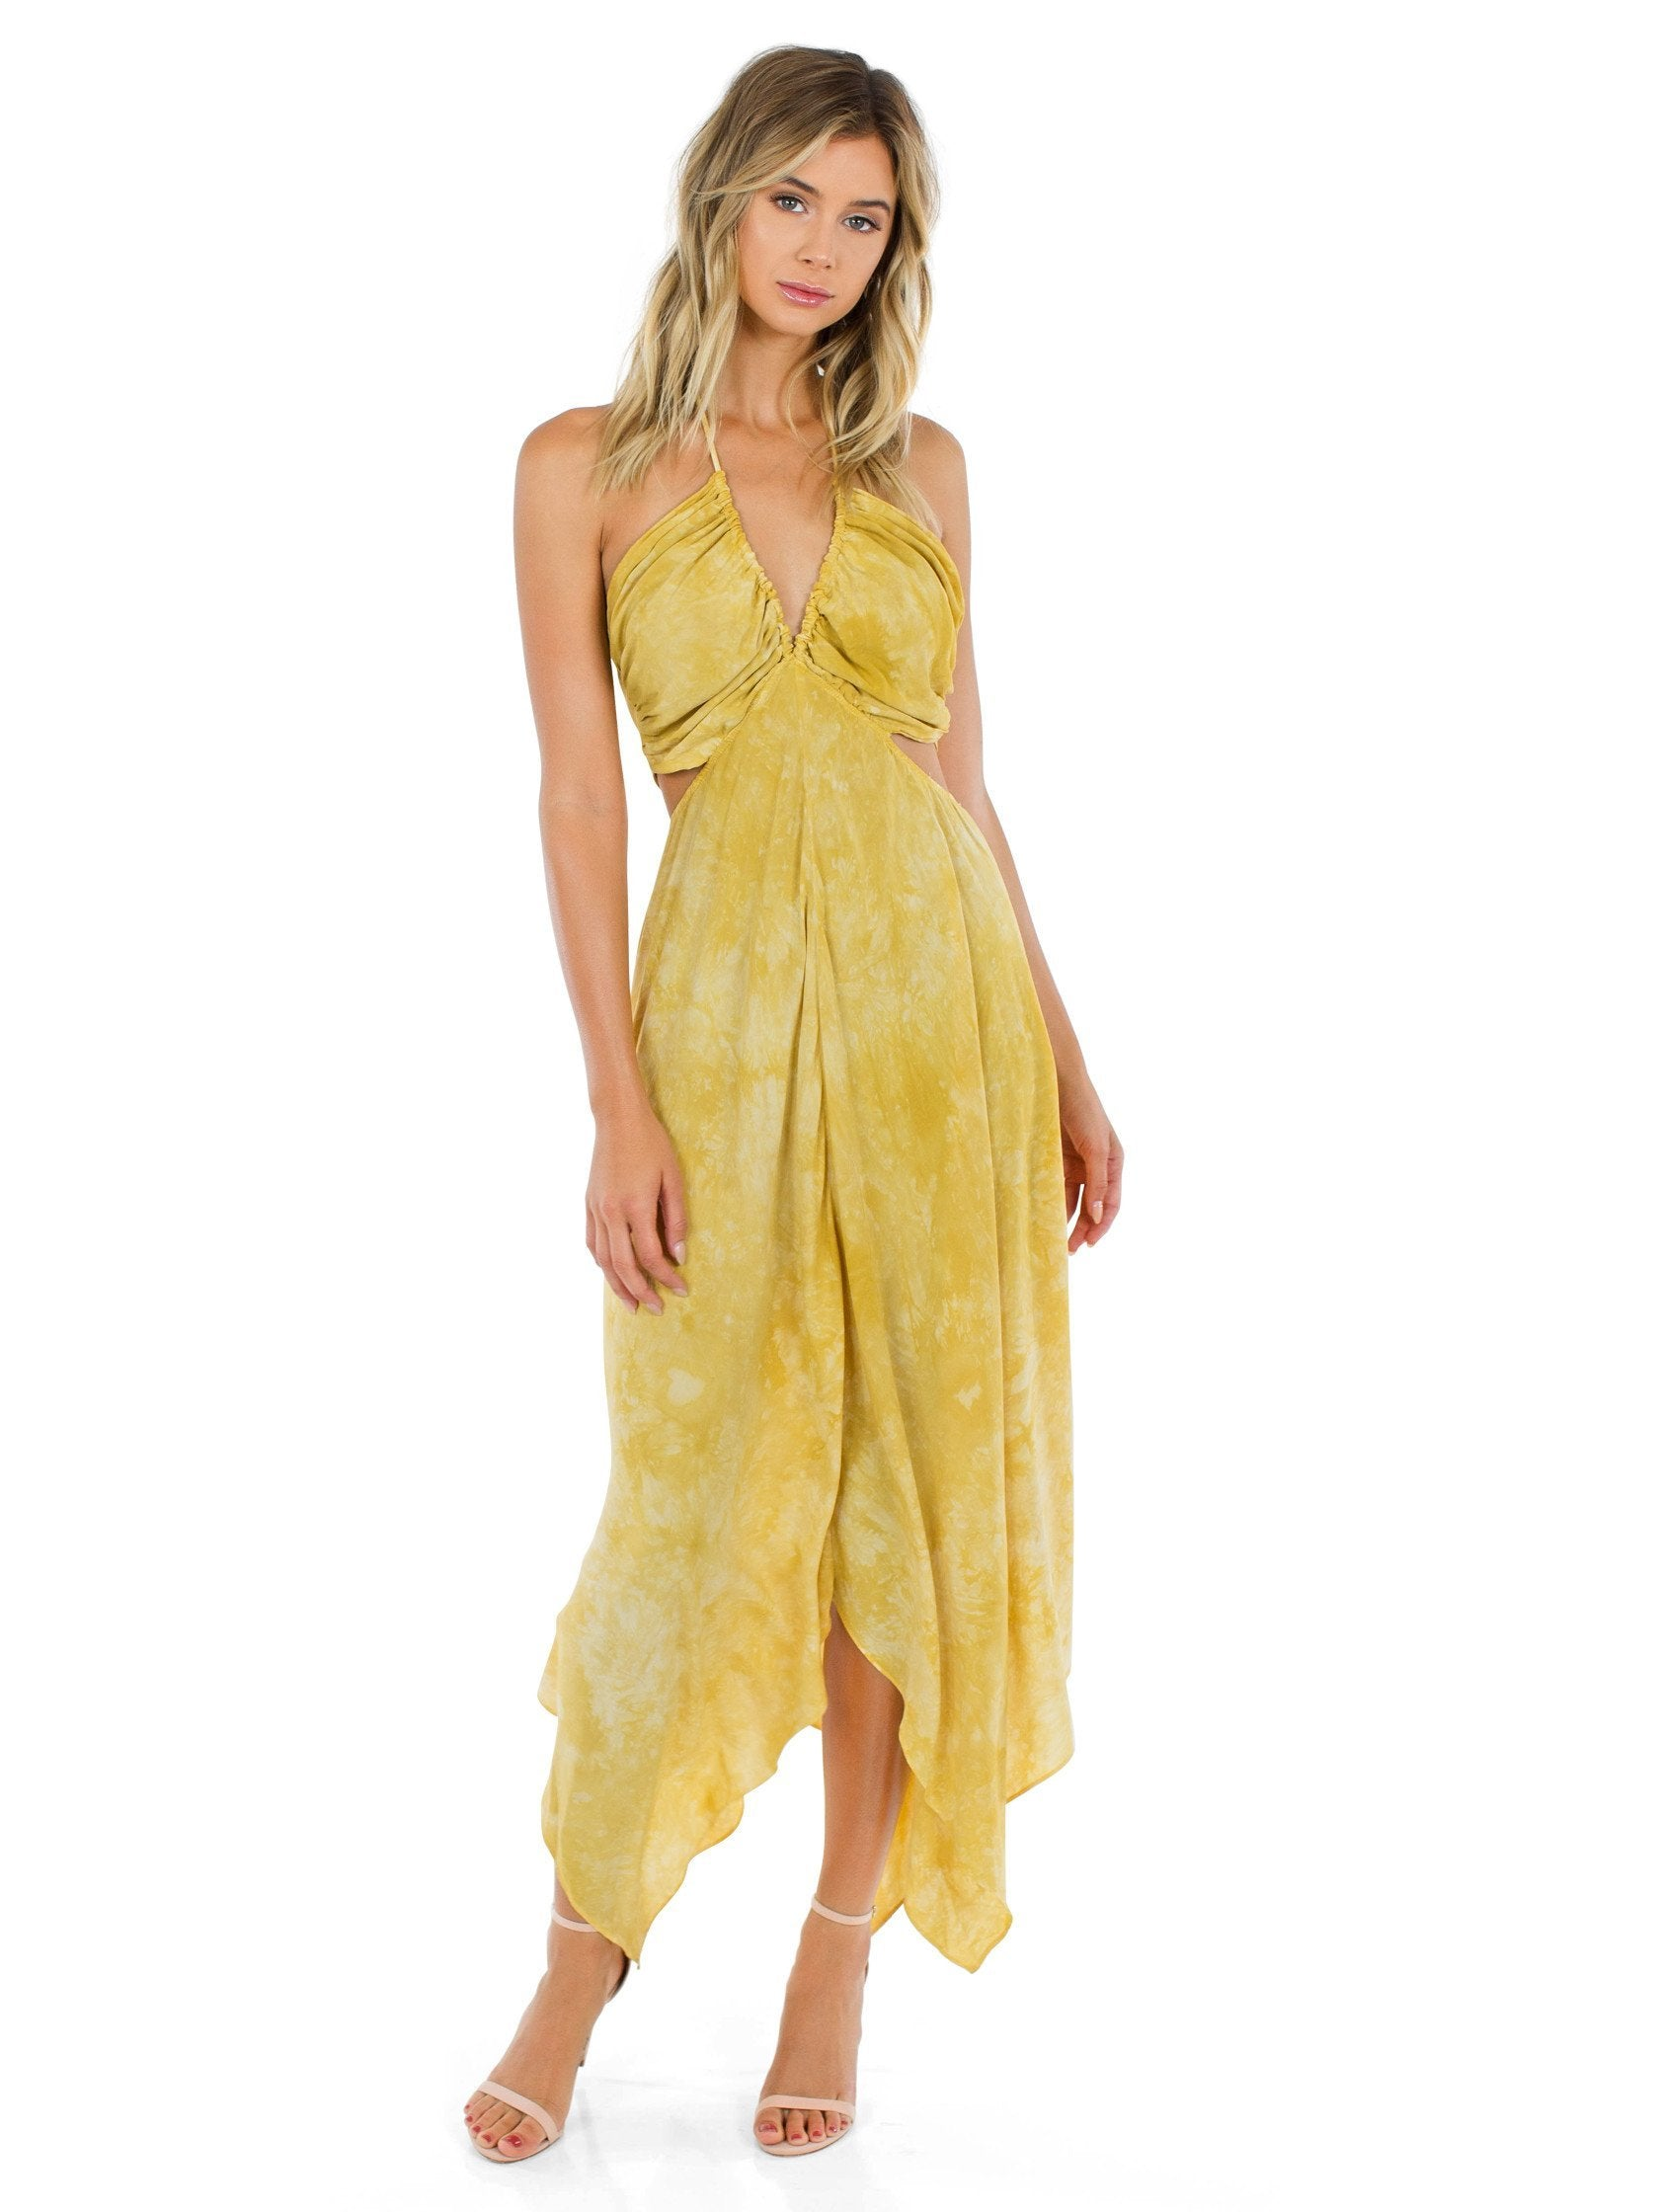 Women outfit in a dress rental from Blue Life called Summer Breeze Halter Maxi